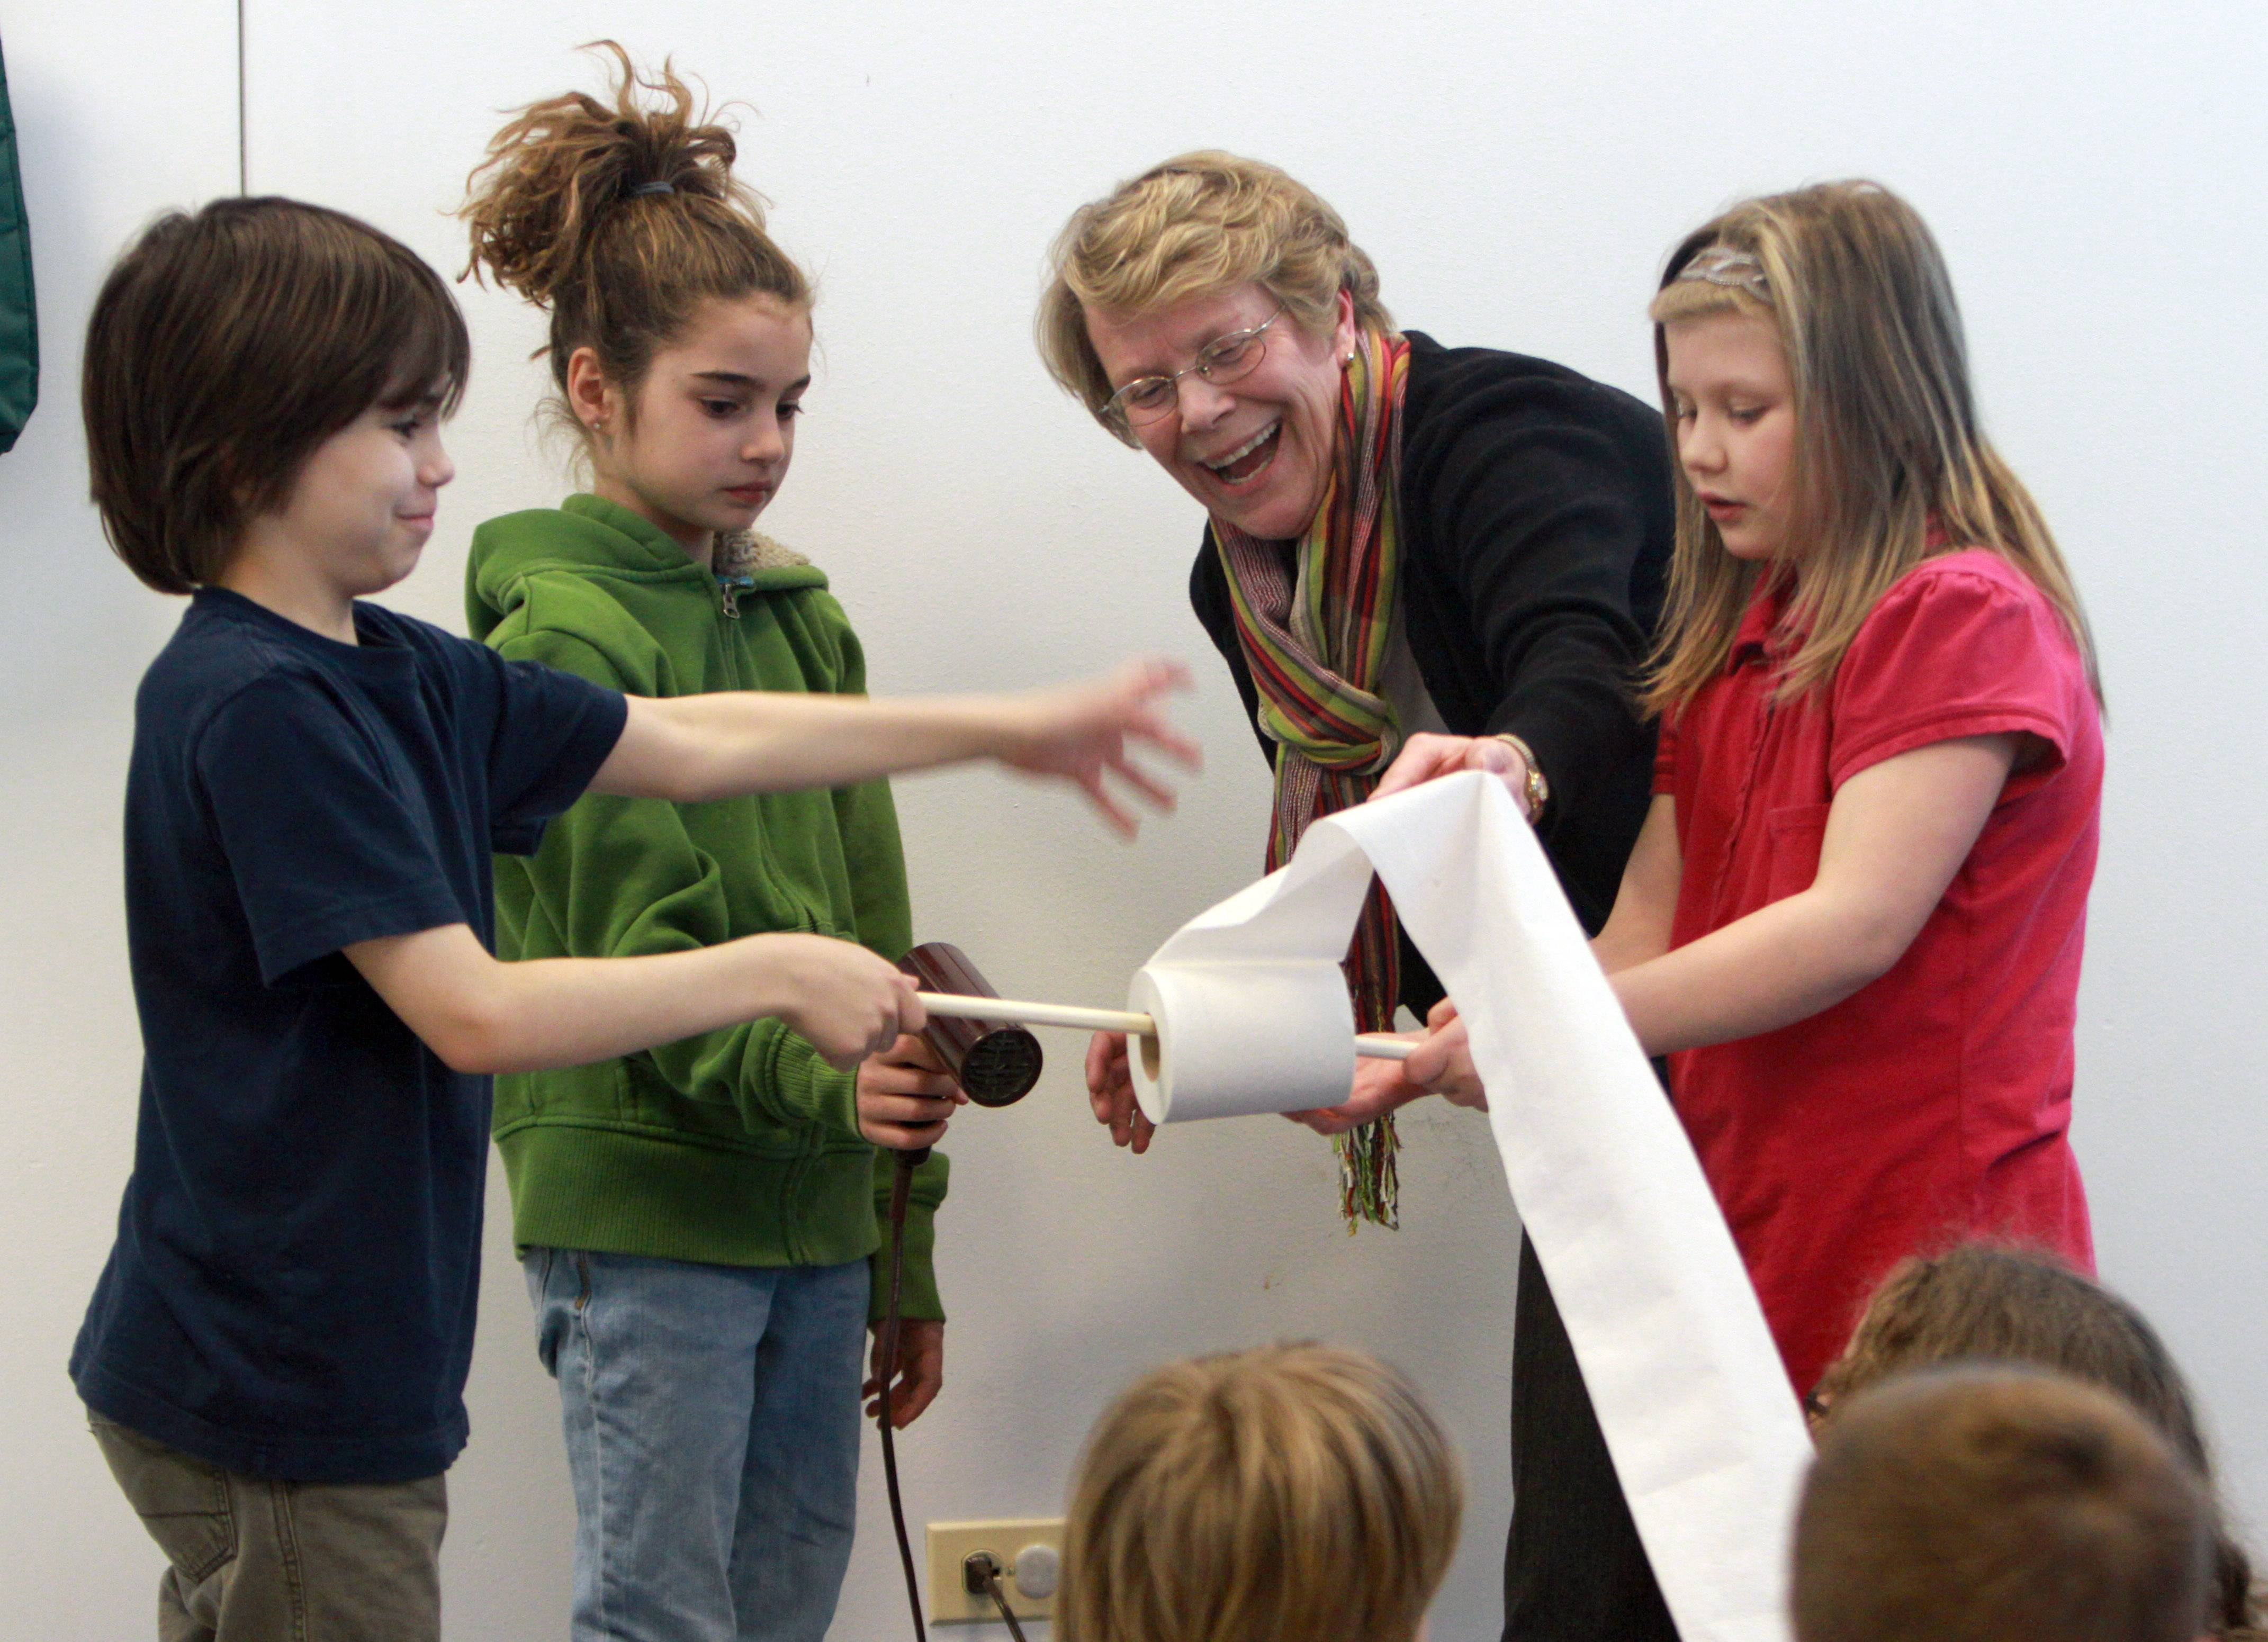 From left, Kyle Boness, 9, Cecilia Frievalt, 9, Children's Librarian Sue Ernest and Delaney Schild, 9, use a hair dryer to blow toilet paper of the roll during an April Fools' Day version of Cool Science at Grayslake Public Library Tuesday. The experiment demonstrated Bernoulli's Principal. The paper flies off the roll because the pressure beneath the paper is higher than on top.